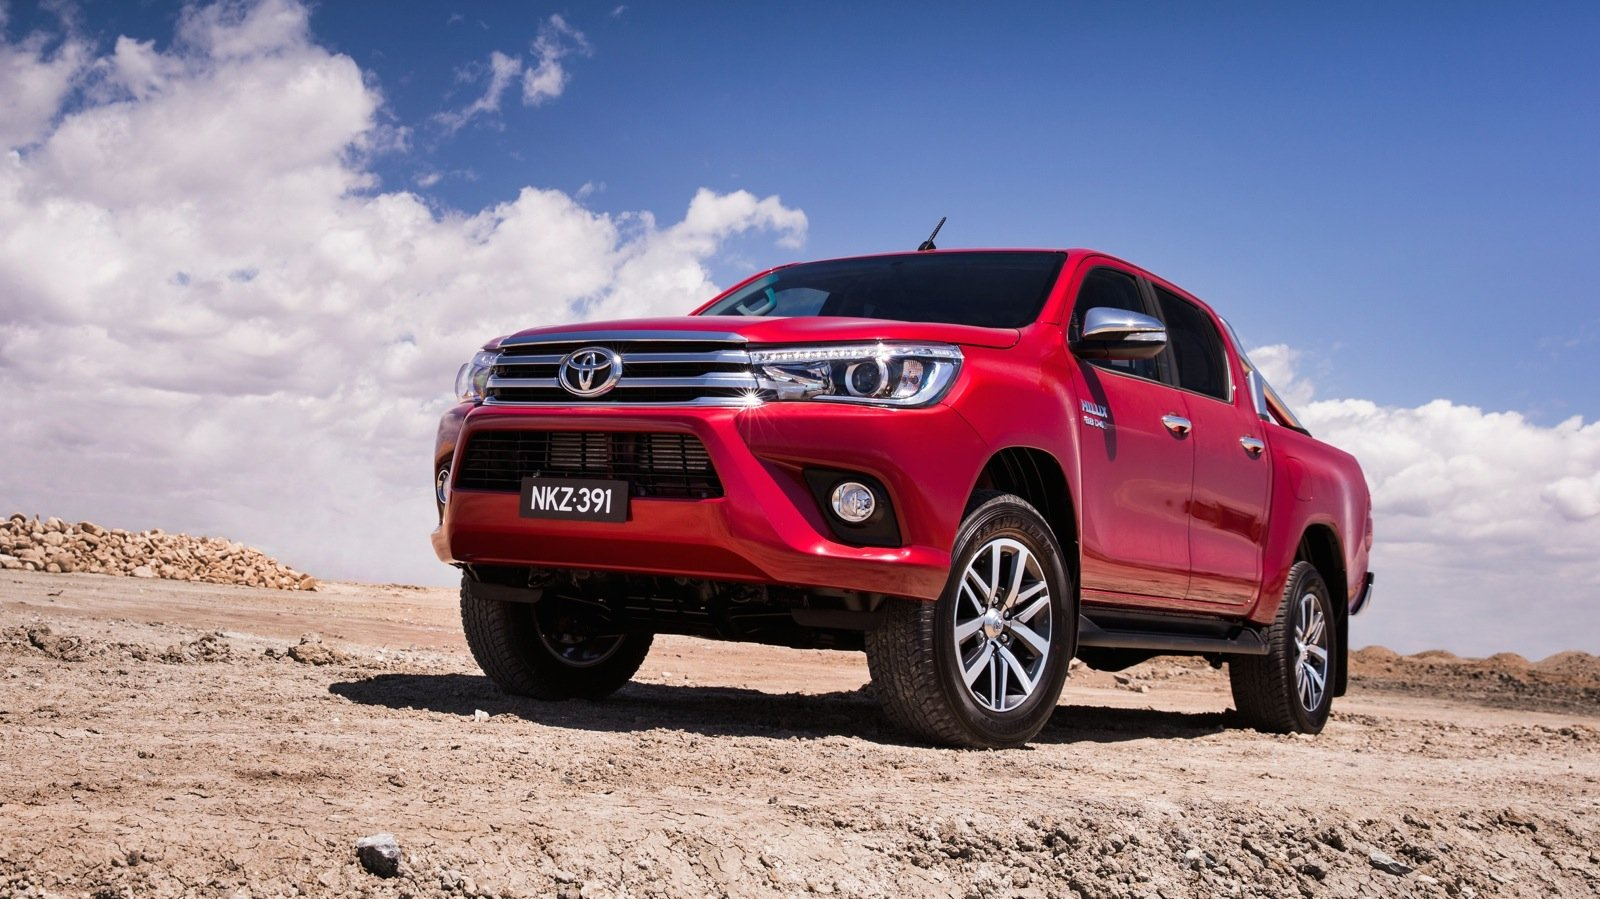 vfacts new car sales october 2015 toyota hilux back on top photos 1 of 7. Black Bedroom Furniture Sets. Home Design Ideas